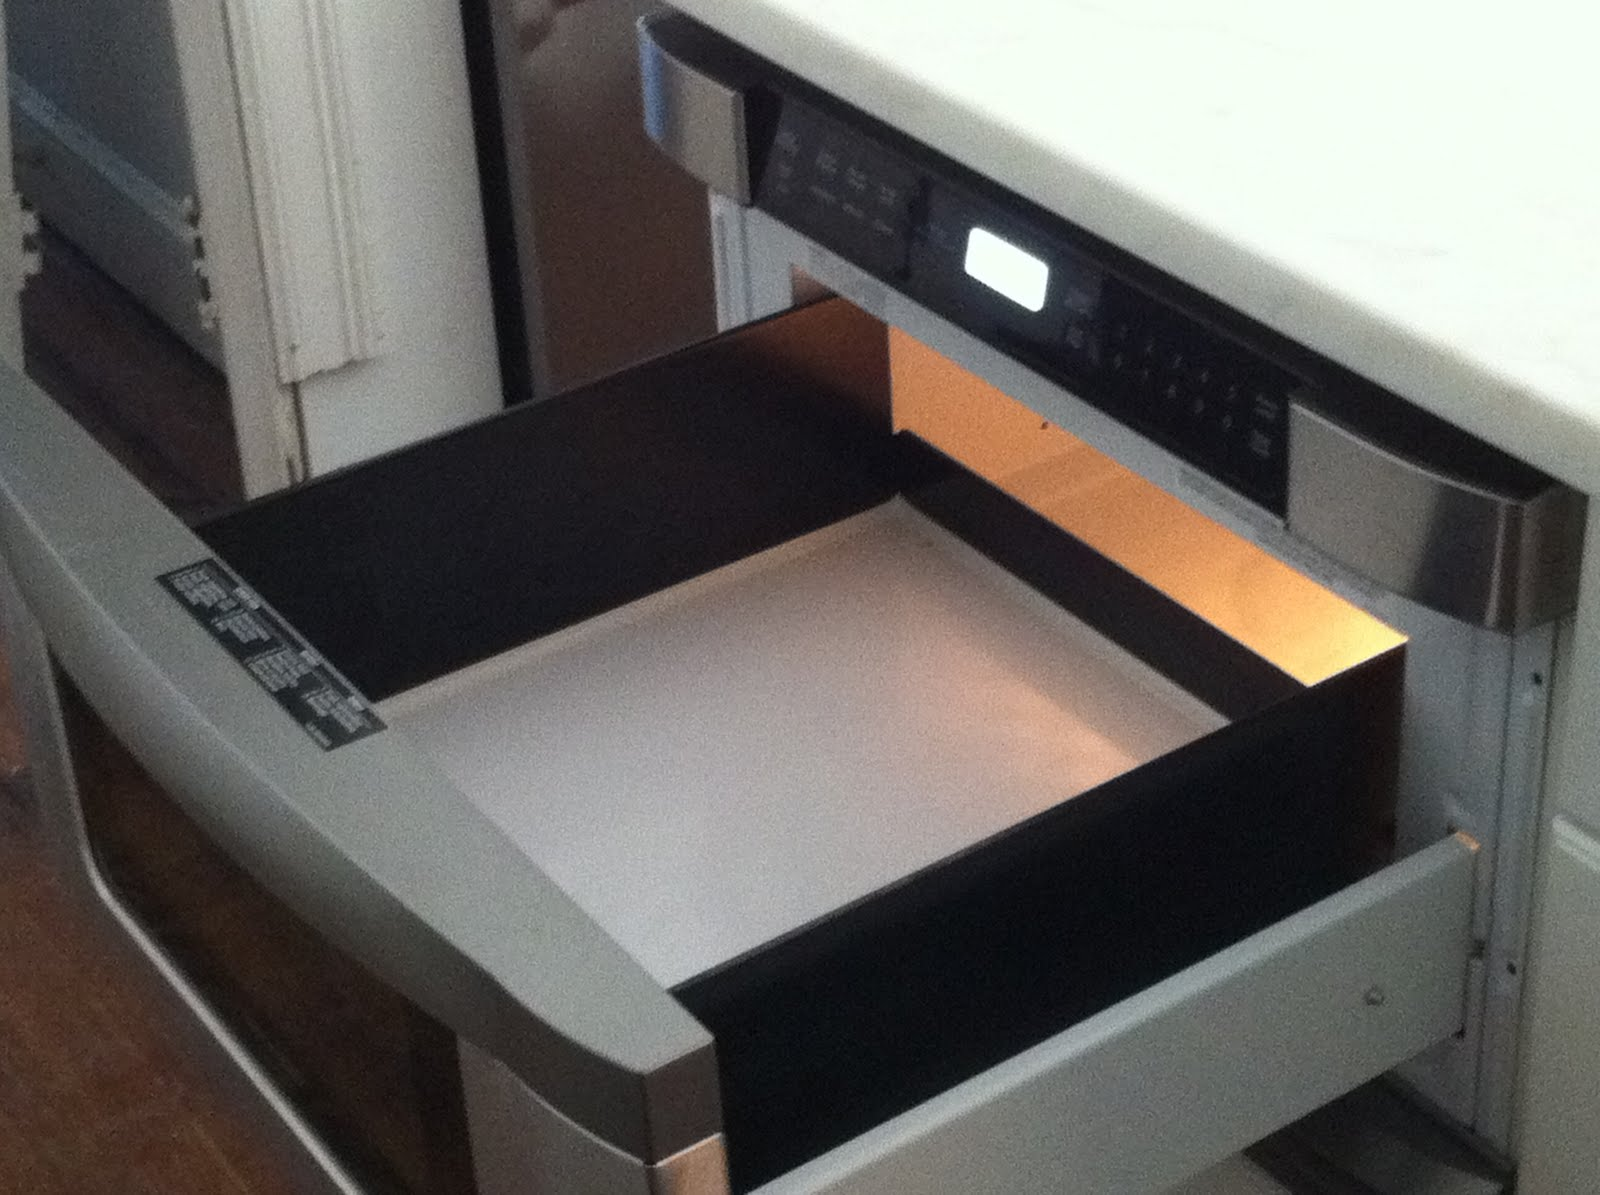 One thing we did not realize immediately was that this dishwasher